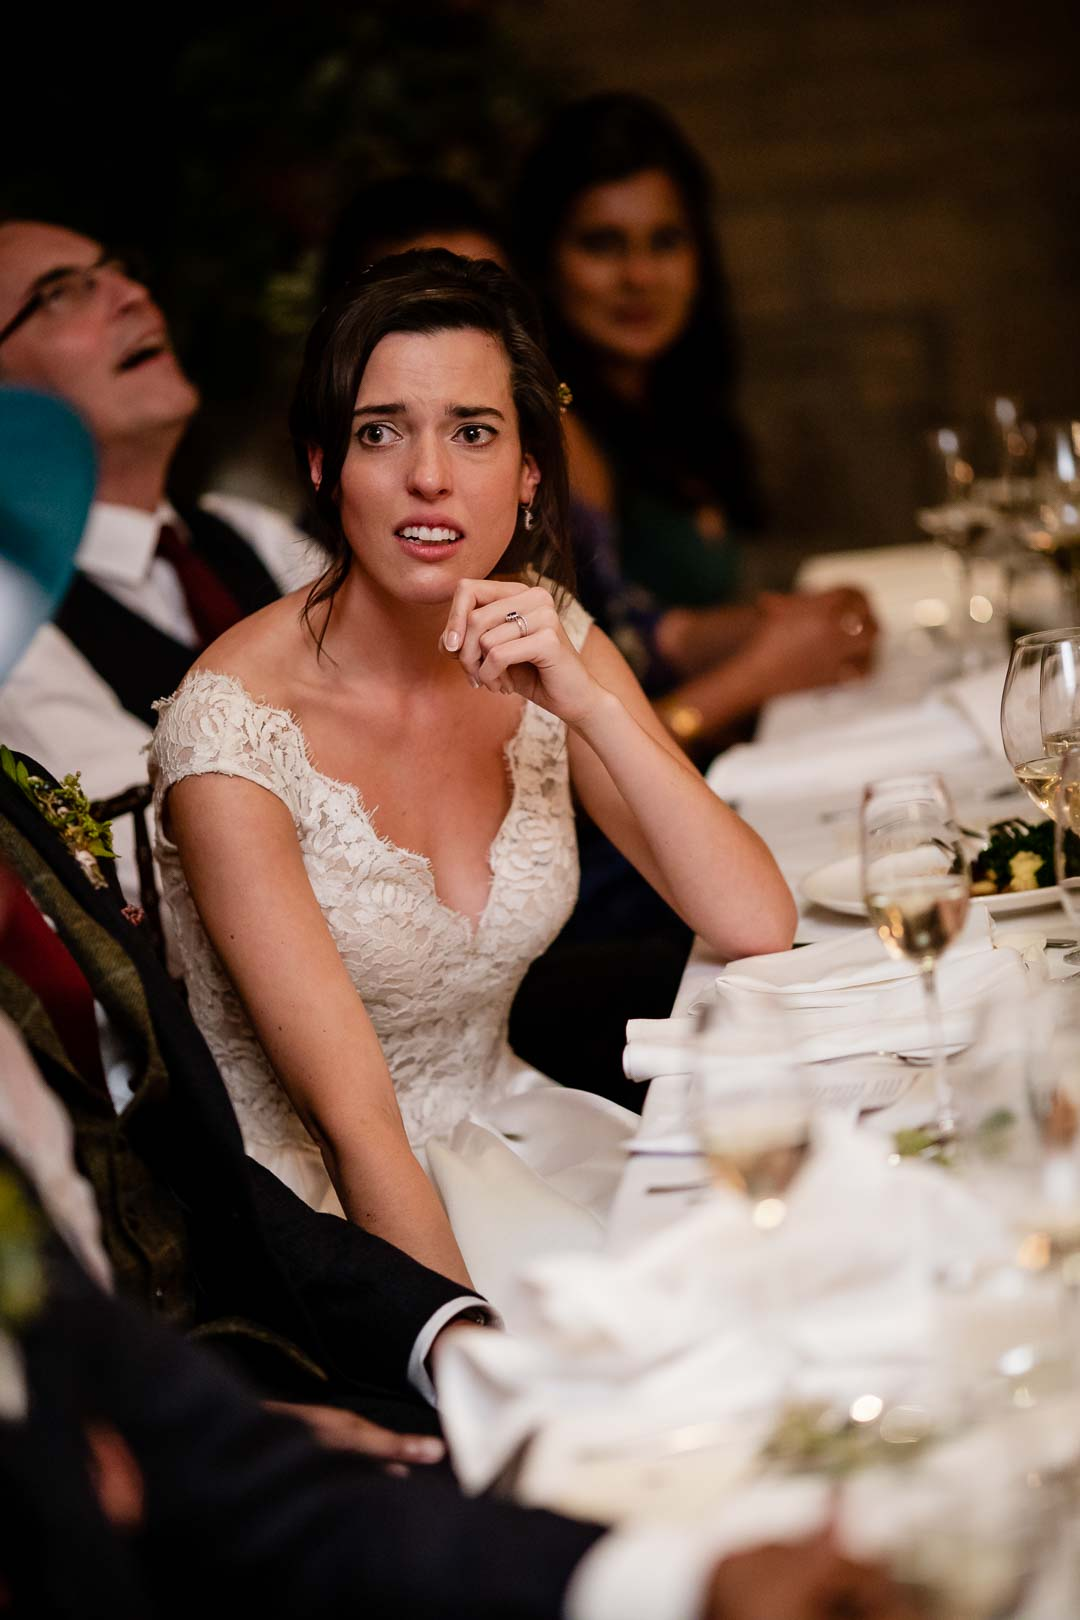 Bride looking sad